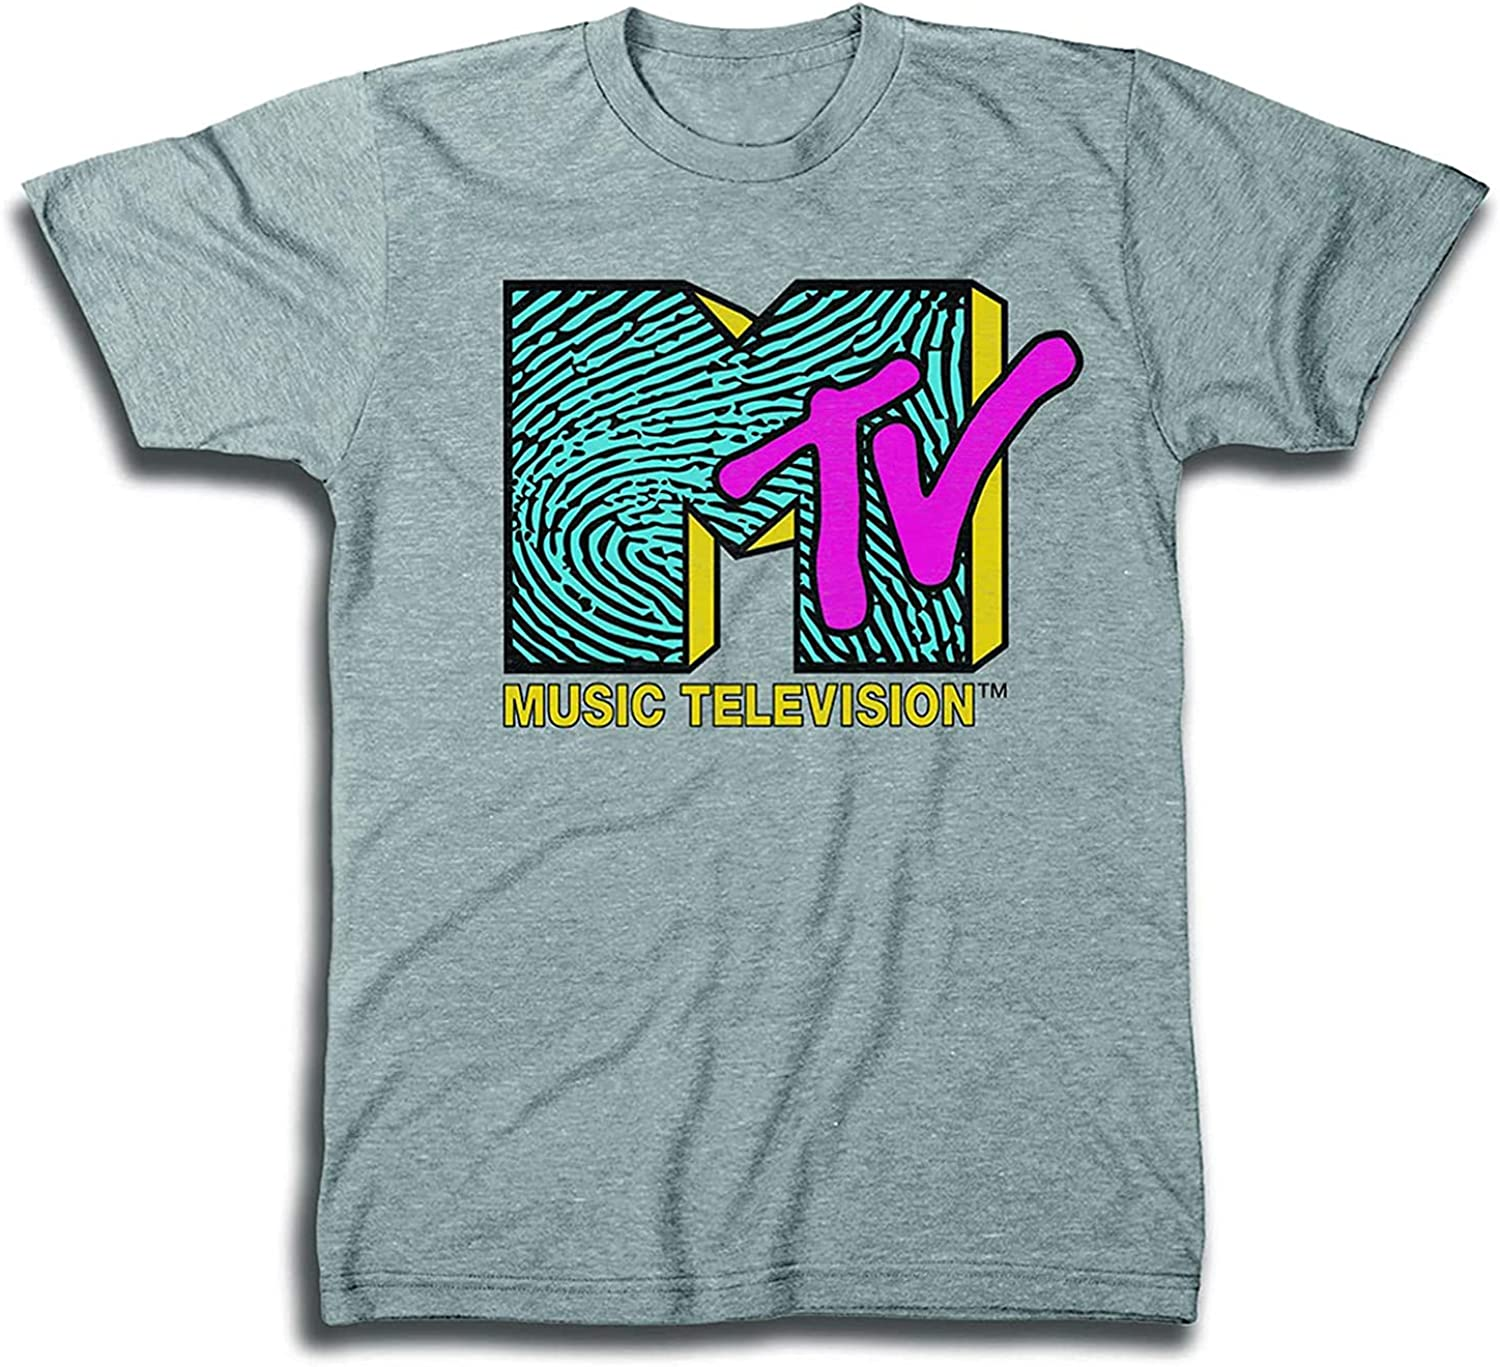 MTV Mens Shirt with Checkerboard - Animer and price revision I #TBT Max 71% OFF Clothing 1980's